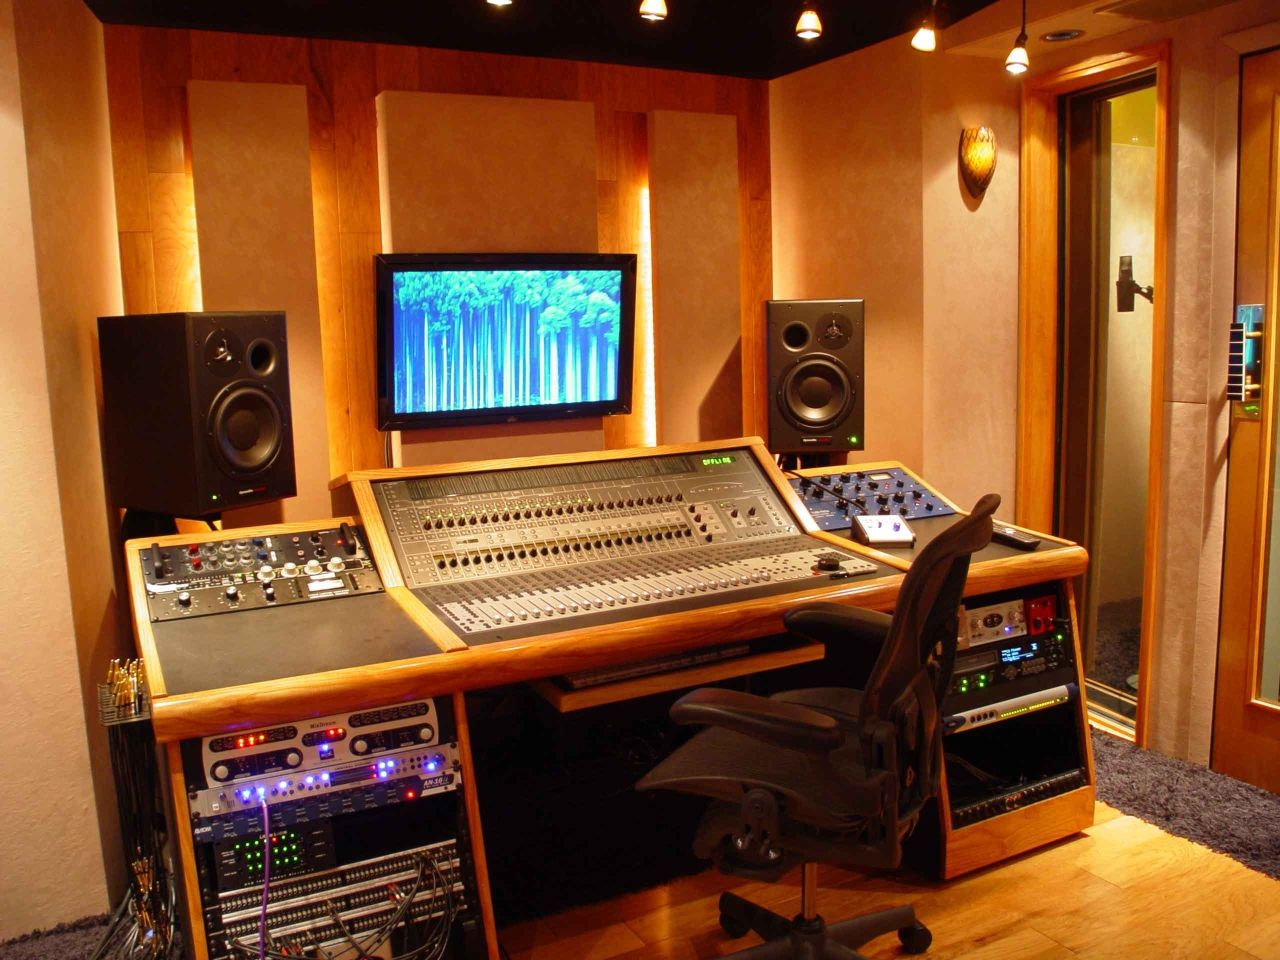 Incredible 17 Best Images About Home Audio Studio On Pinterest A Well Home Inspirational Interior Design Netriciaus